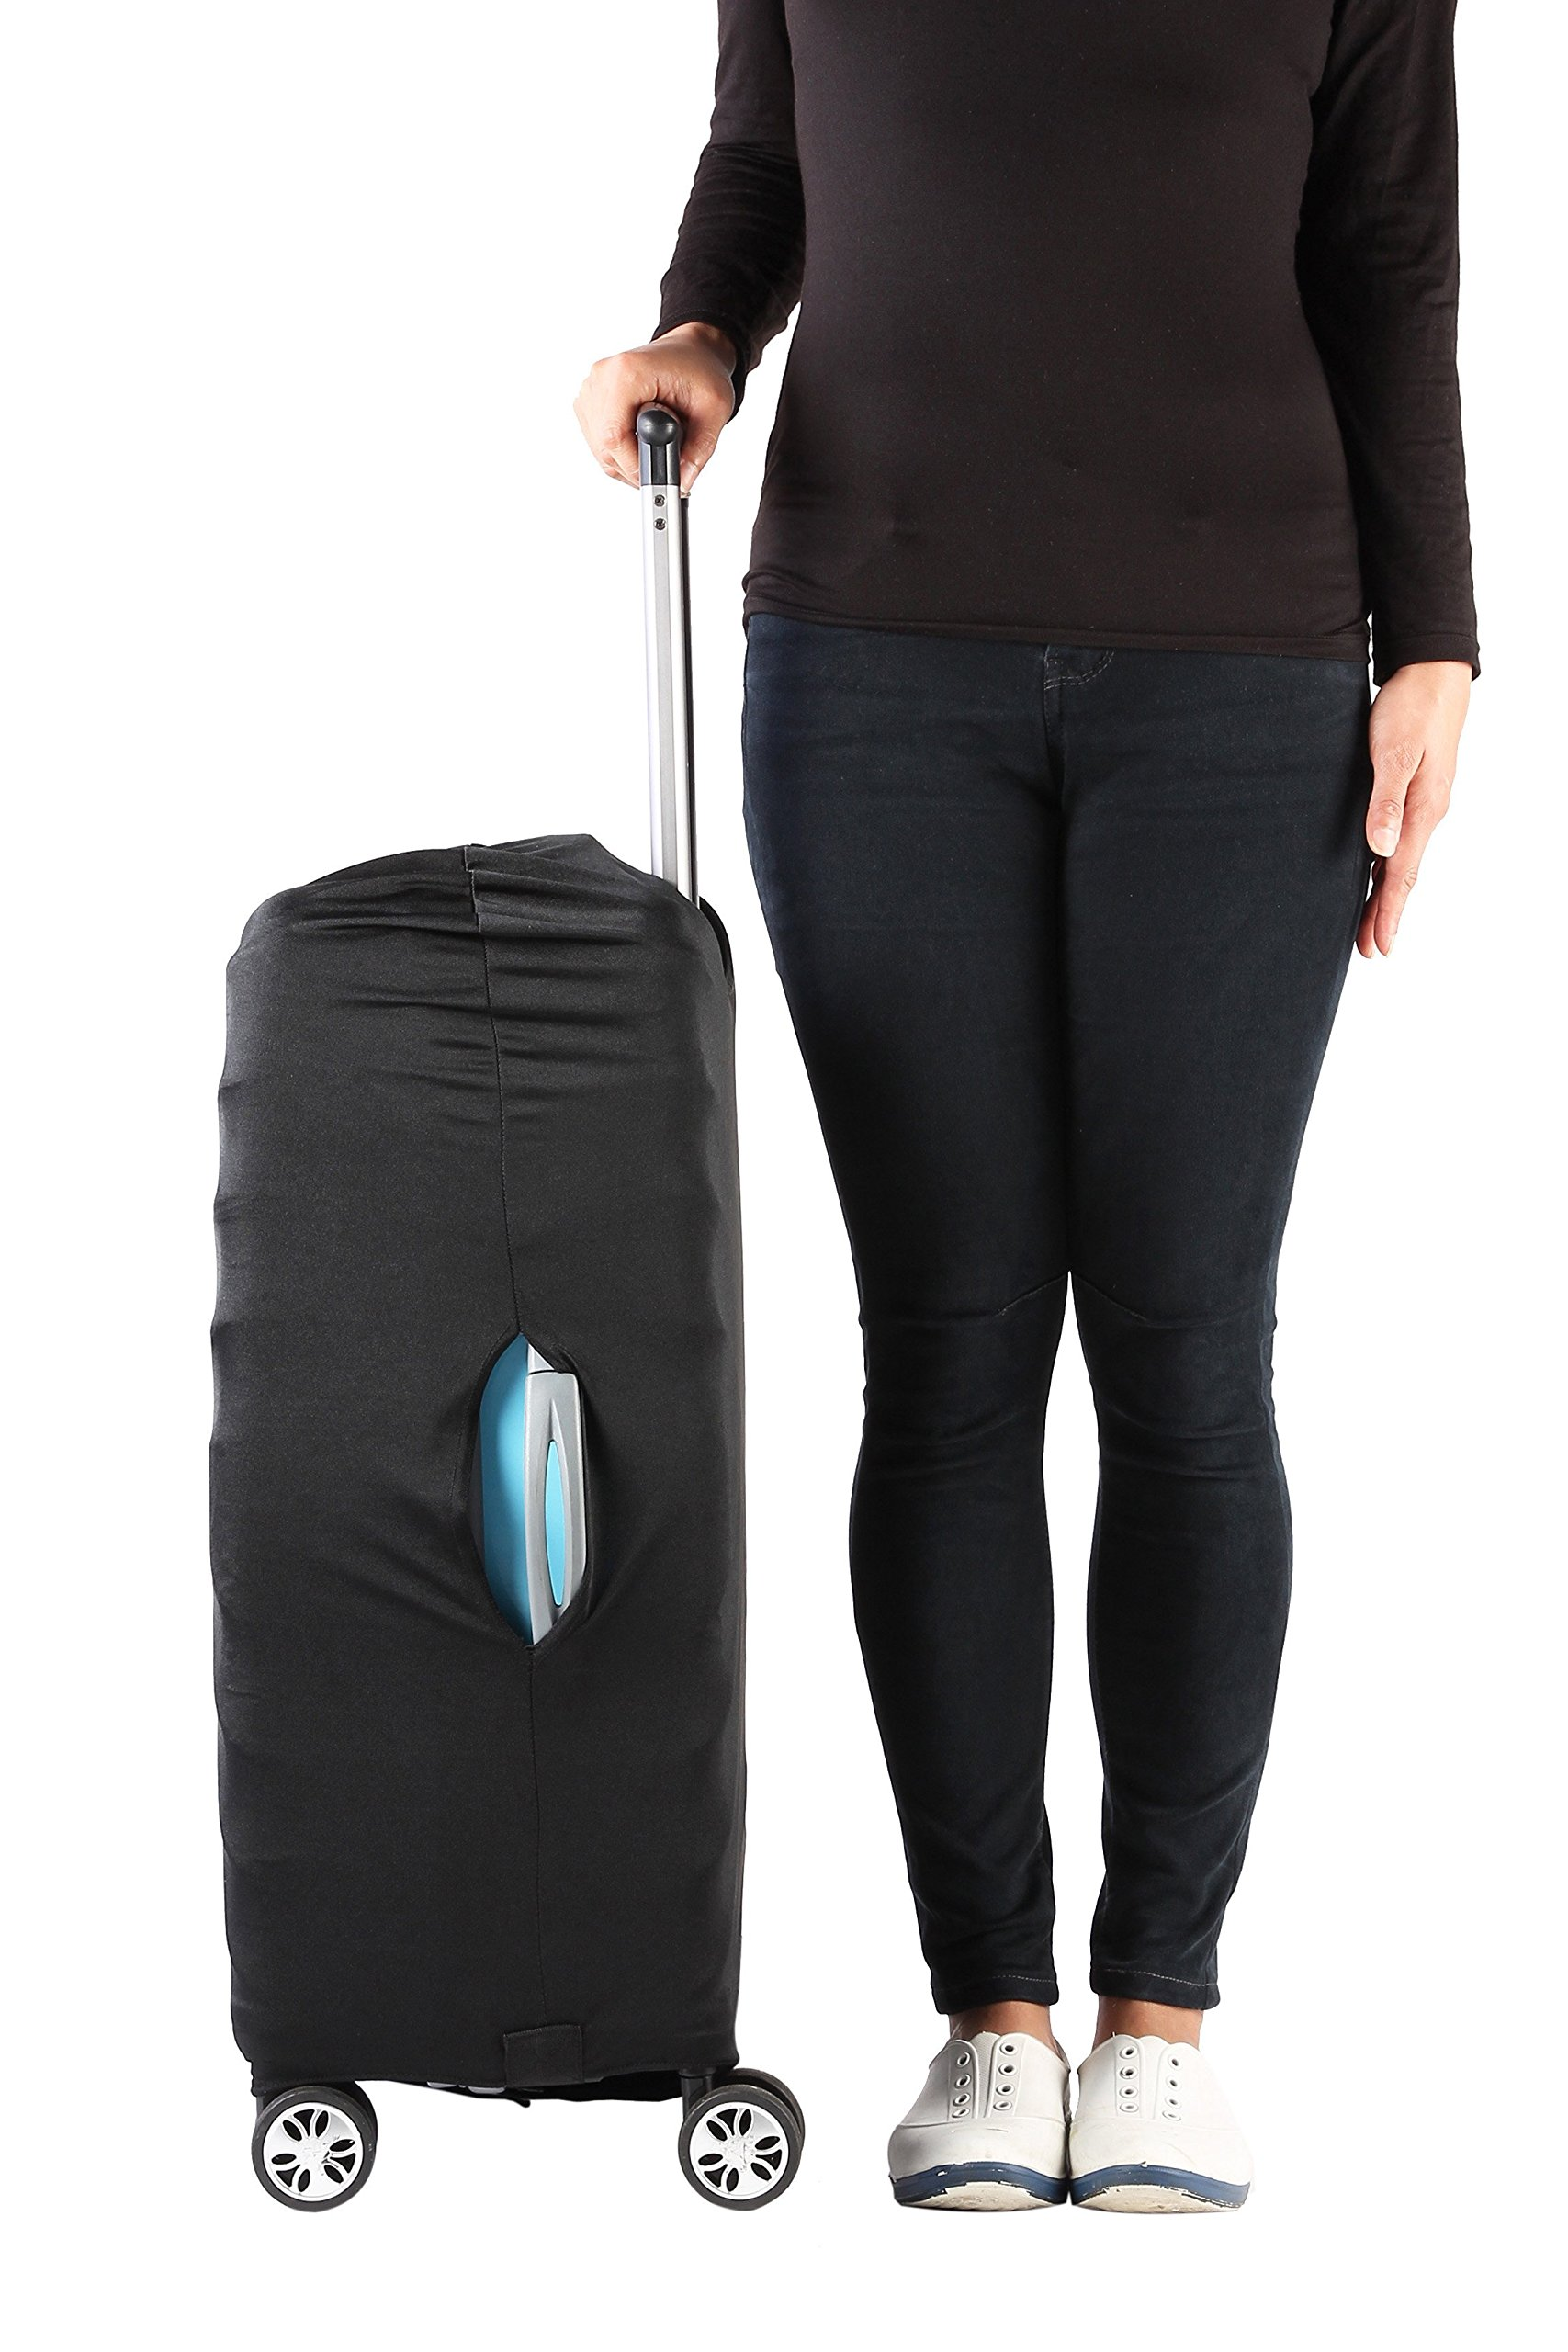 Travel Luggage Protective Cover - Stretchable Suitcase Protector Case, Black, 26 Inches by Juvale (Image #2)